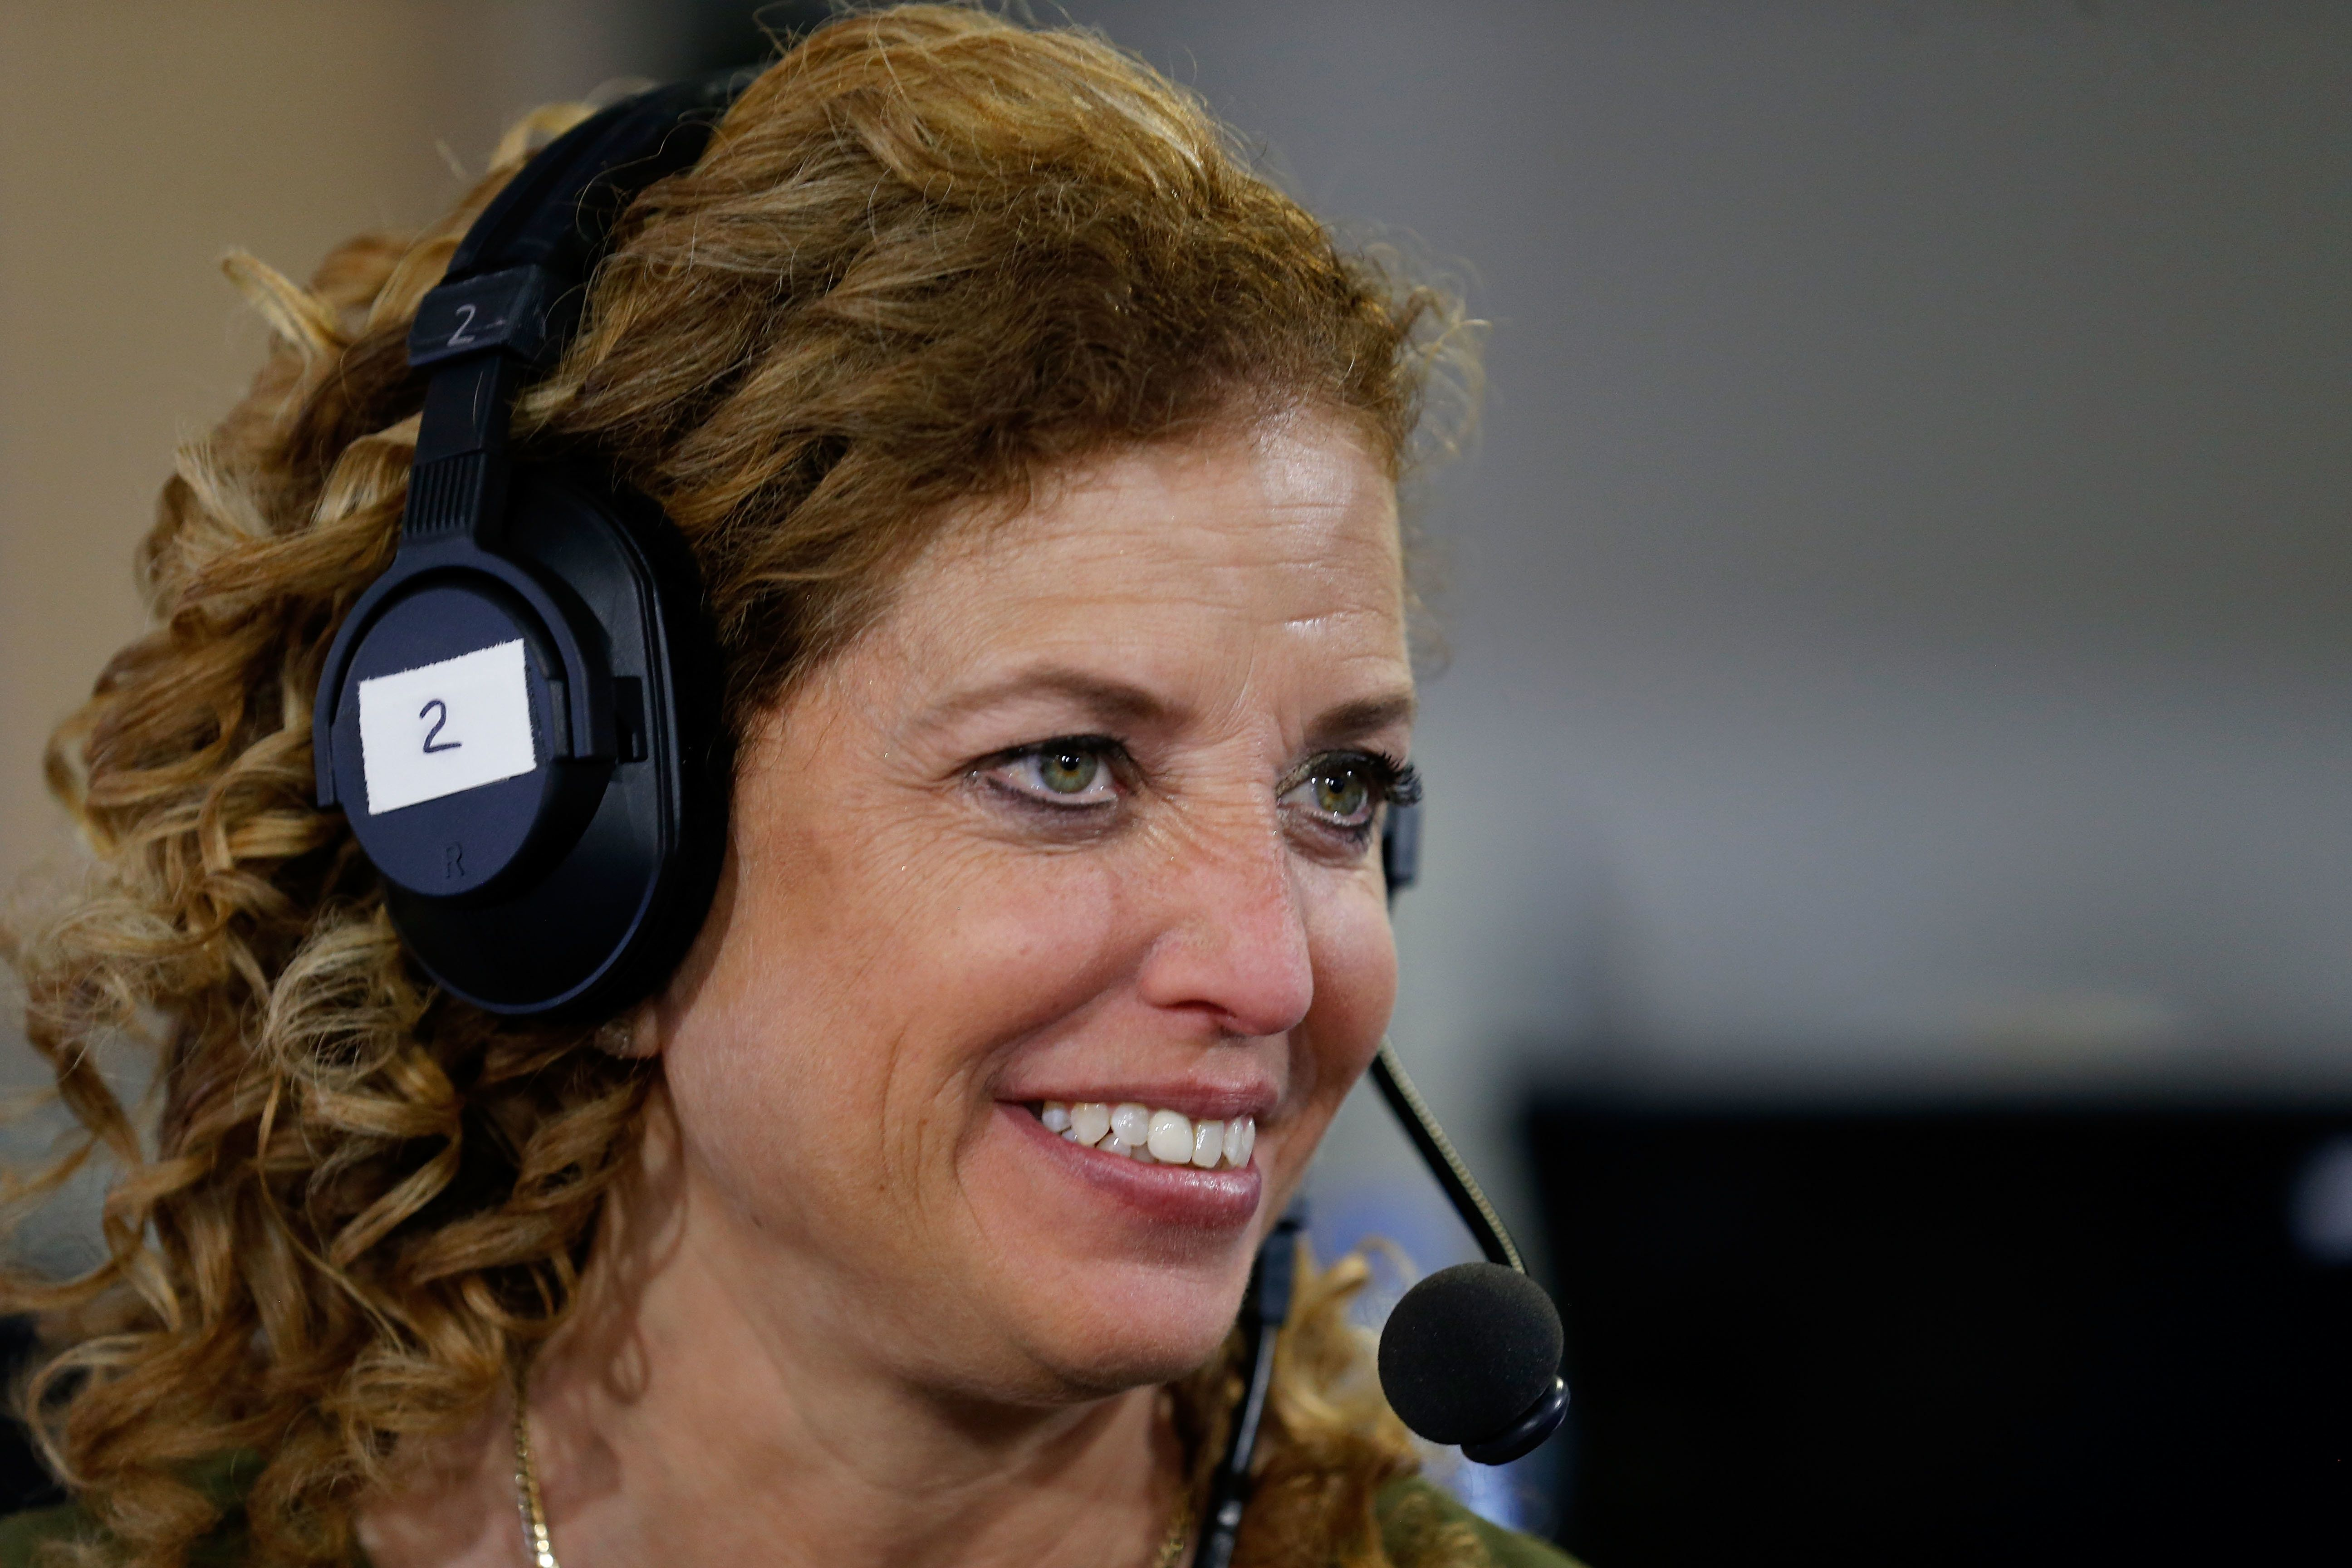 CLEVELAND, OH - JULY 20: Debbie Wasserman Schultz, chair of the Democratic National Committee, discusses why she believes Hillary Clinton is the best candidate for the presidency, while being interviewed by Julie Mason, on 'The Press Pool' at Quicken Loans Arena on July 20, 2016 in Cleveland, Ohio. (Photo by Kirk Irwin/Getty Images for SiriusXM)